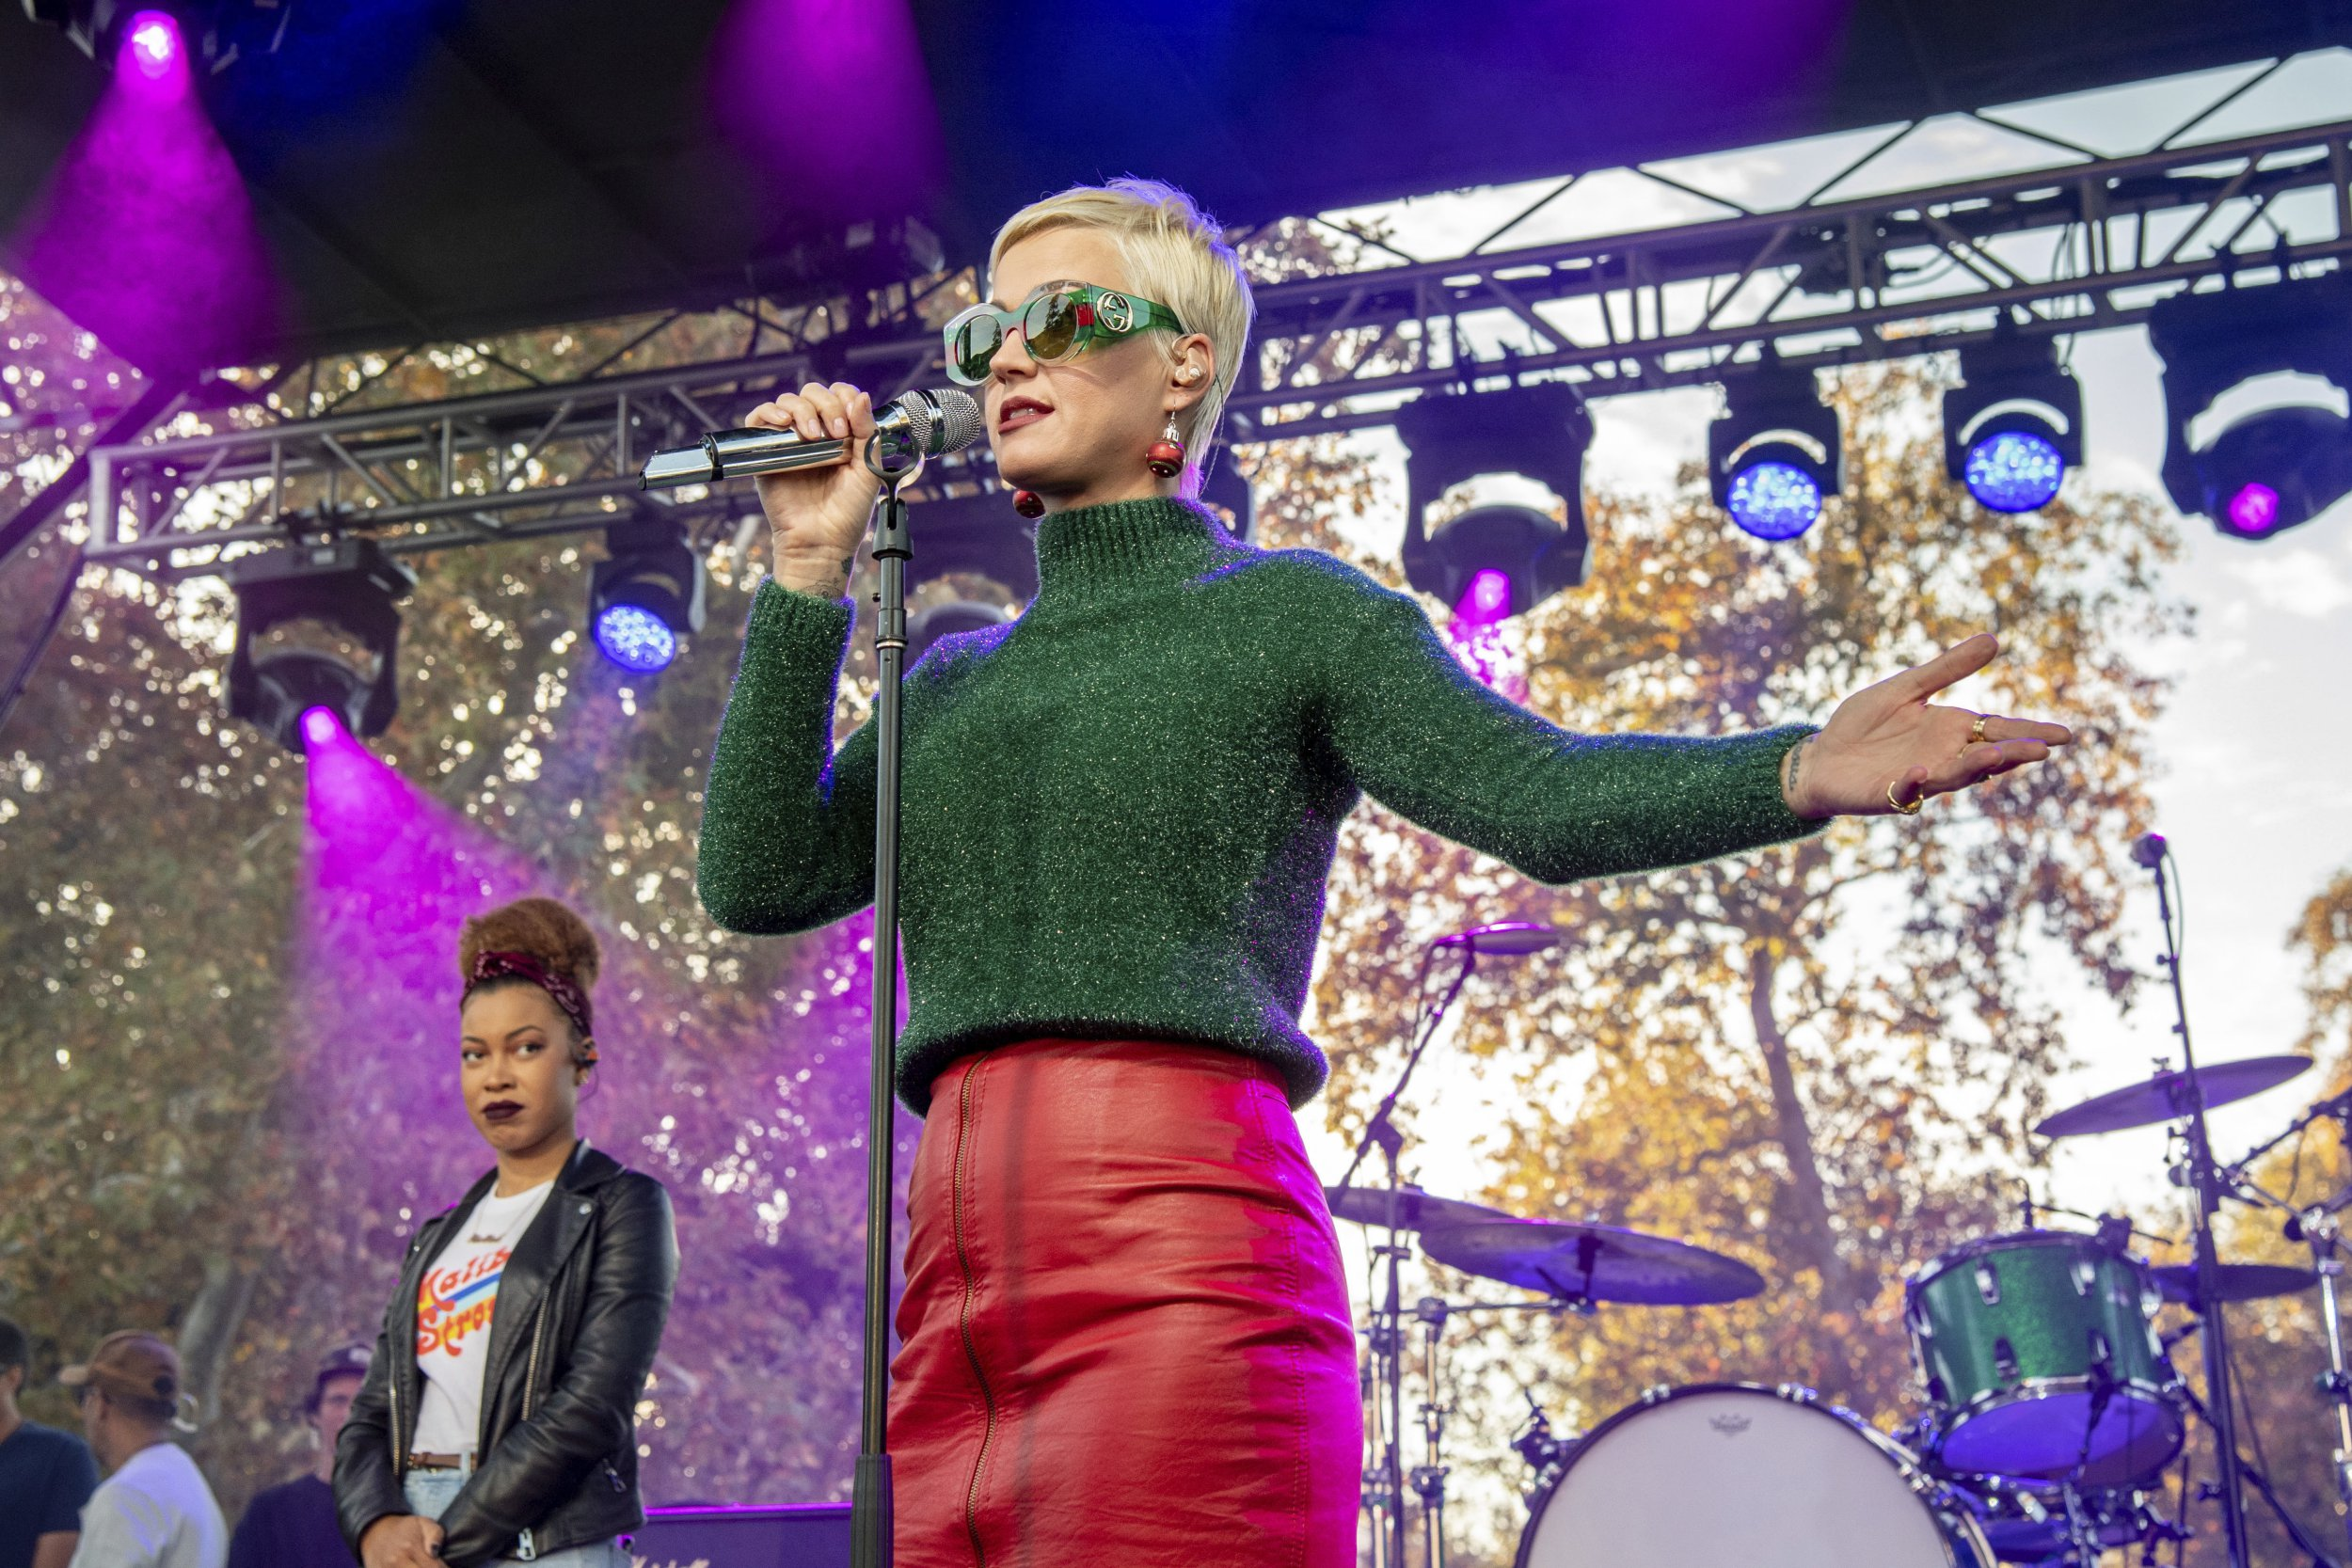 Katy Perry performs at One Love Malibu at King Gillette Ranch on Sunday, Dec. 2, 2018, in Calabasas, Calif. (Photo by Amy Harris/Invision/AP)